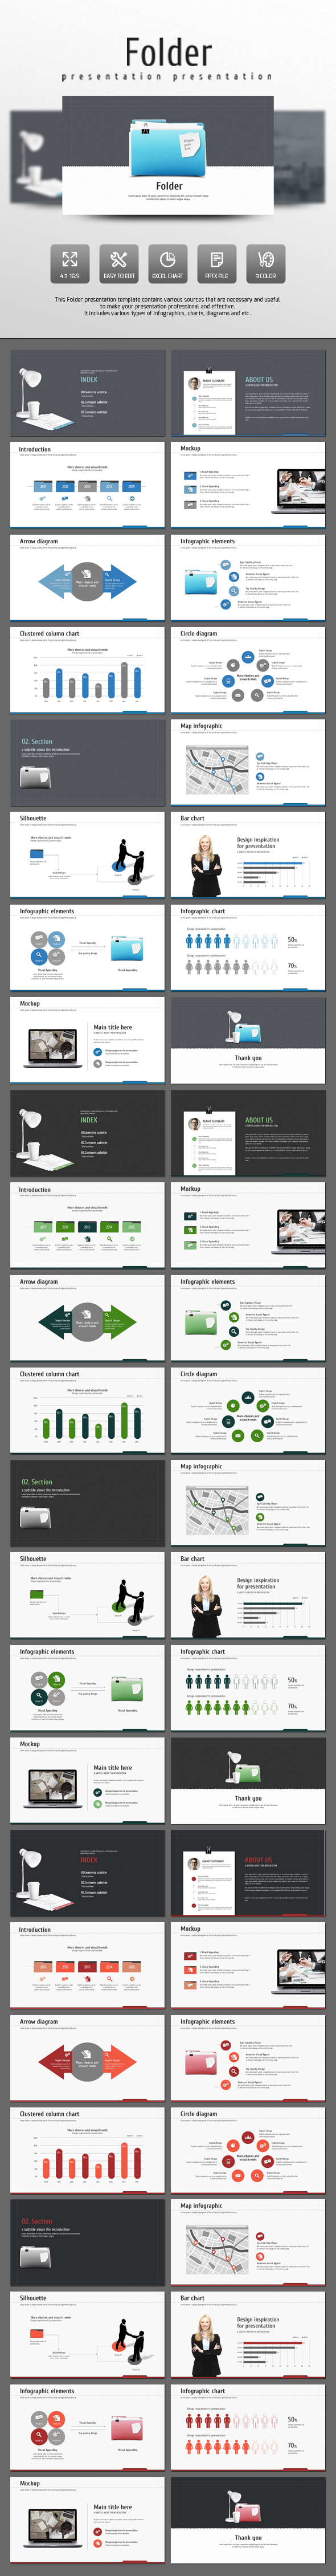 Folder - Business PowerPoint Templates